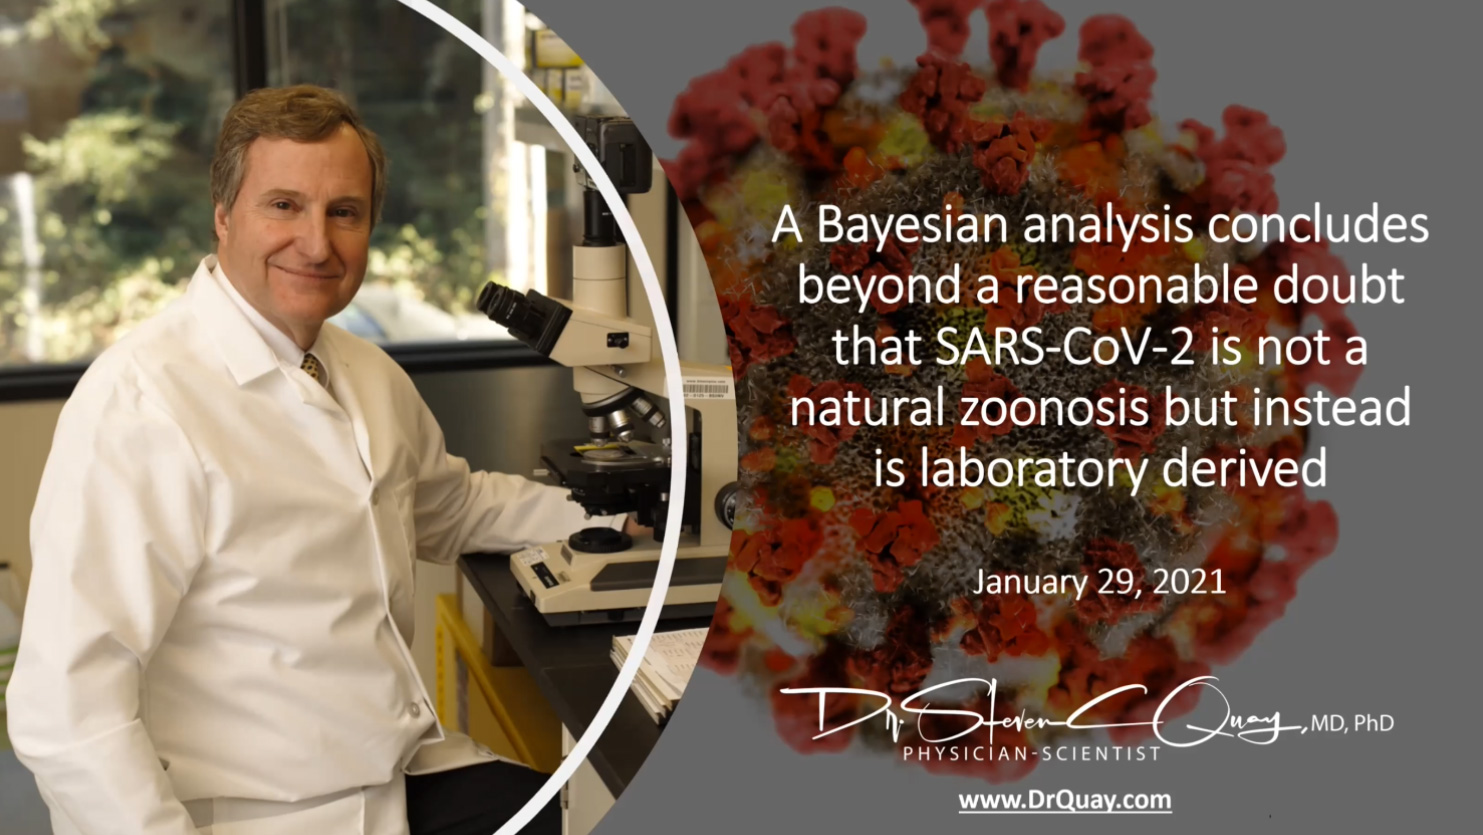 SARS-CoV-2 Bayesian Analysis by Steven Carl Quay MD Phd